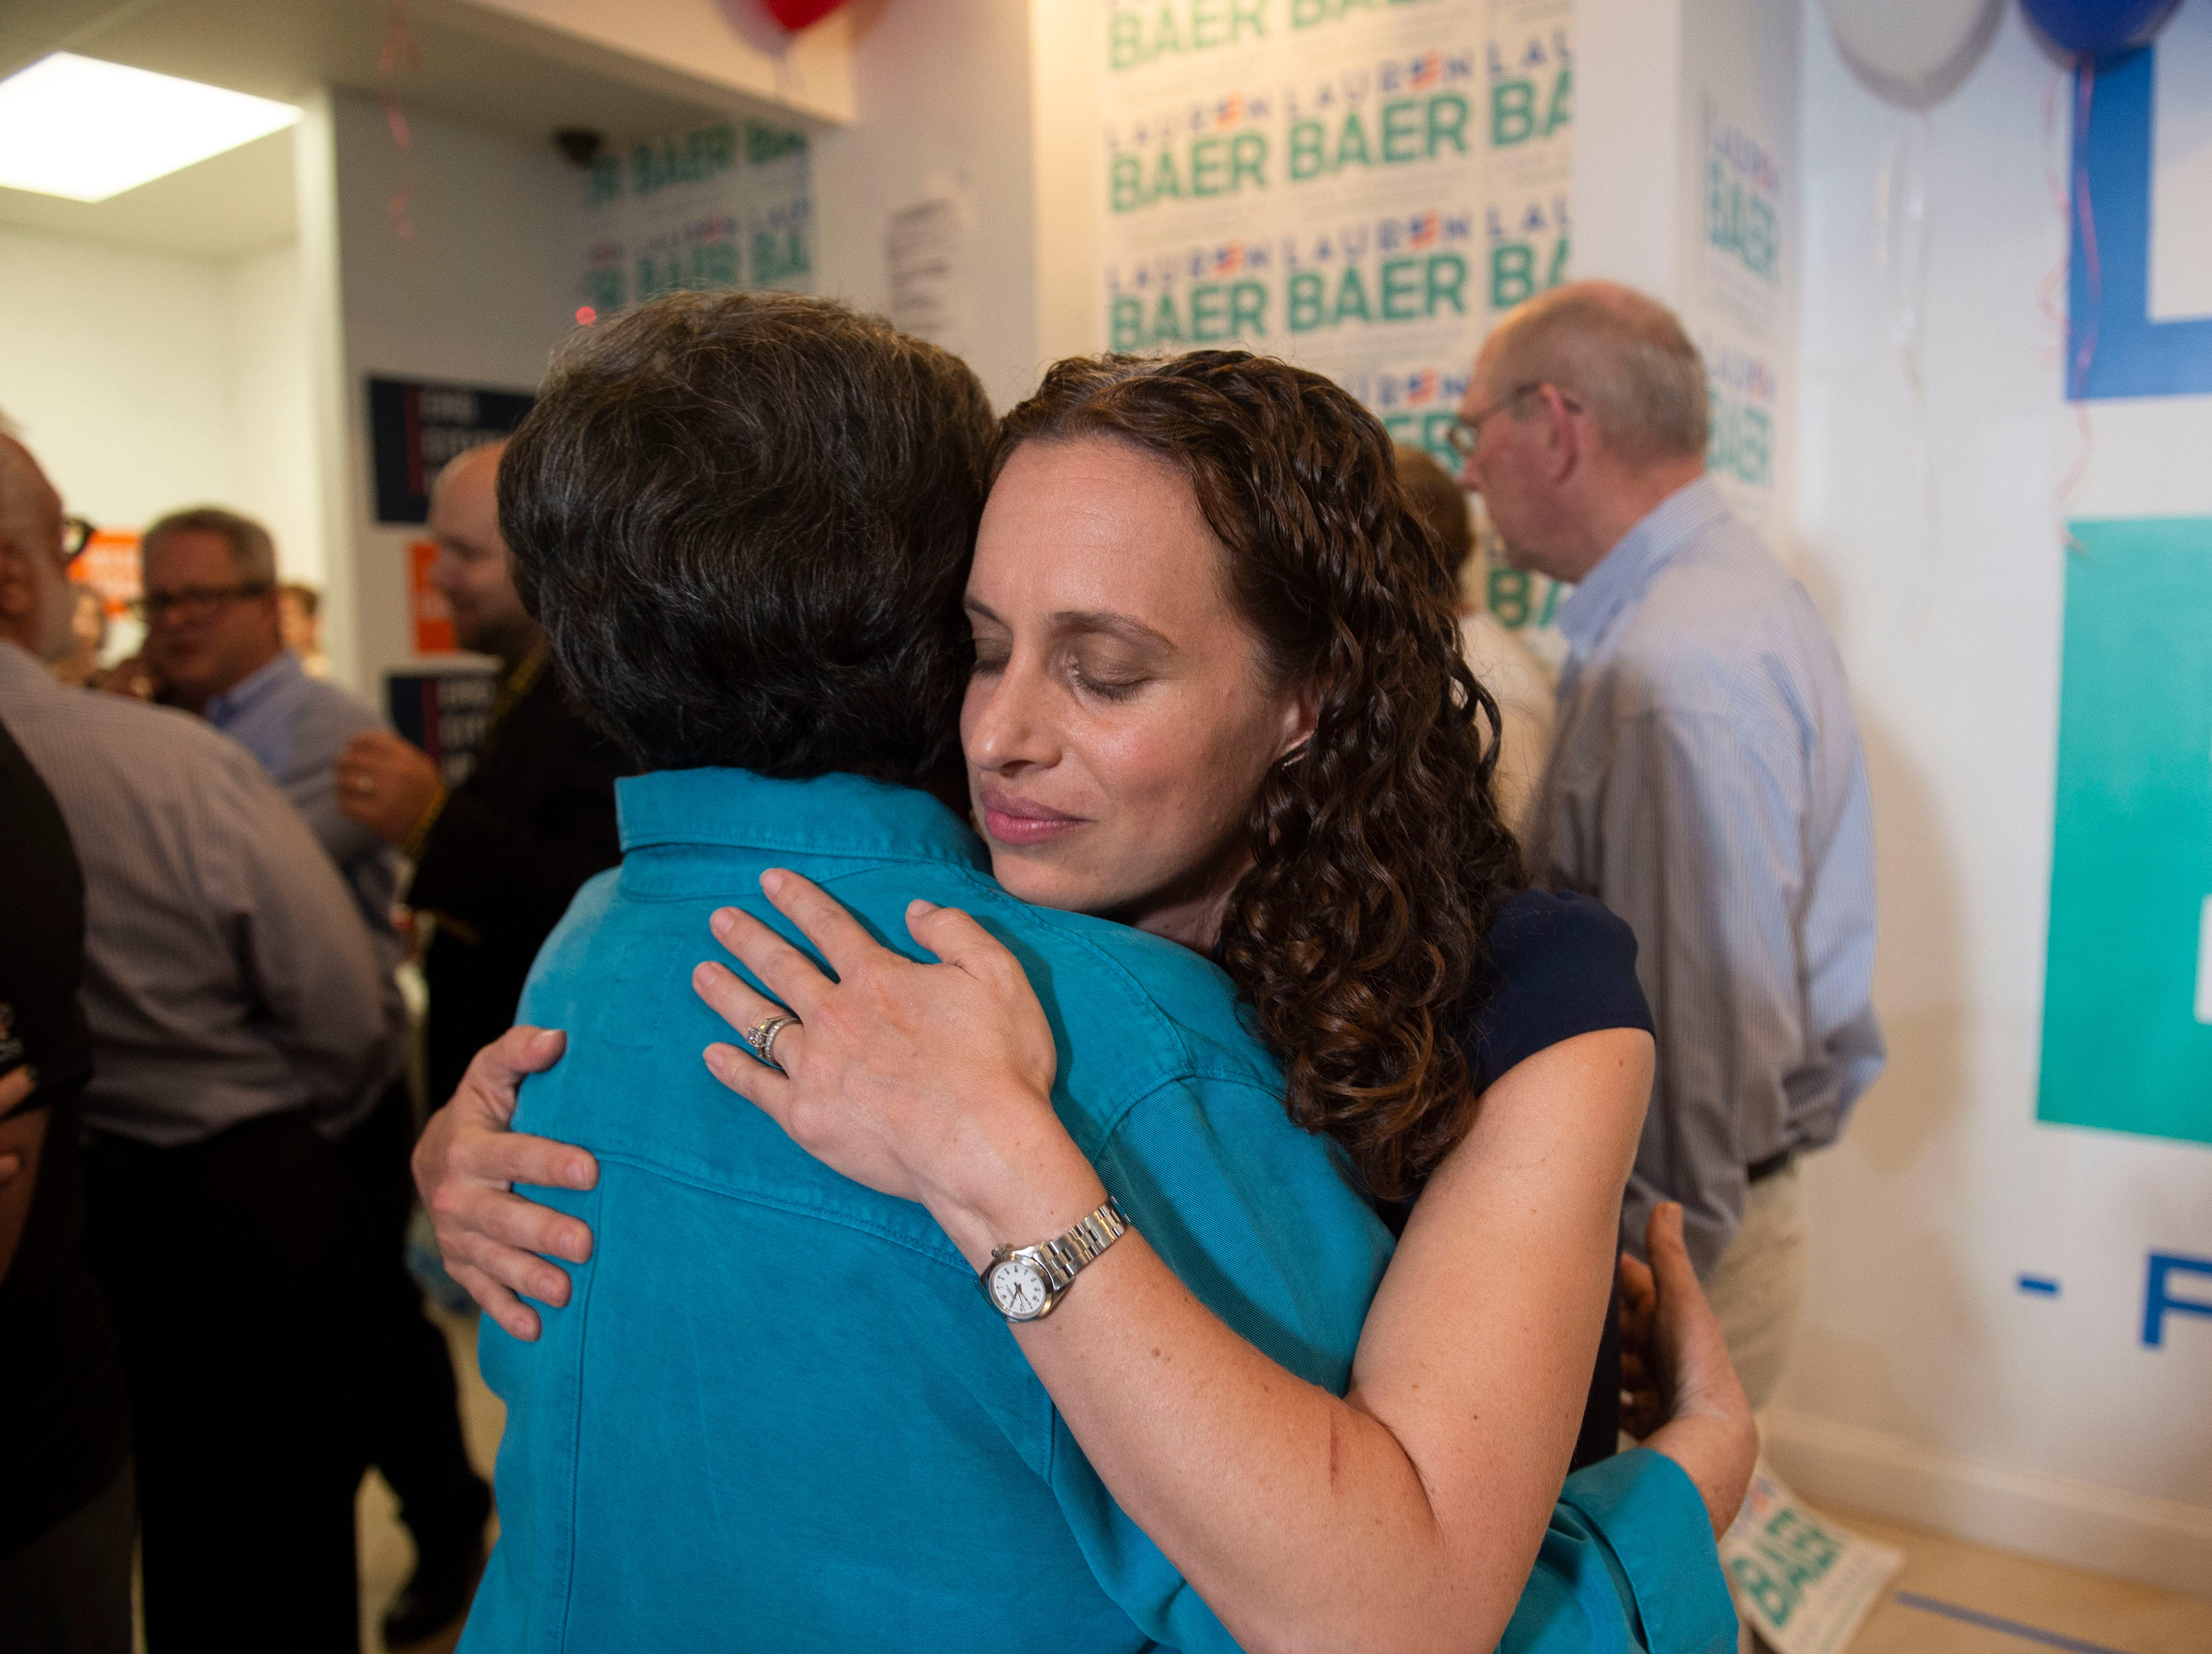 Democrat Lauren Baer, of Palm Beach Gardens, is congratulated by U.S. Rep. Lois Frankel on Baer's U.S. House District 18 win against Pam Keith in the primary election on Tuesday, Aug. 28, 2018 at her campaign office in Jupiter. Baer, a former Obama administration foreign policy advisor, will be facing incumbent U.S. Rep. Brian Mast in the Nov. 6 general election.